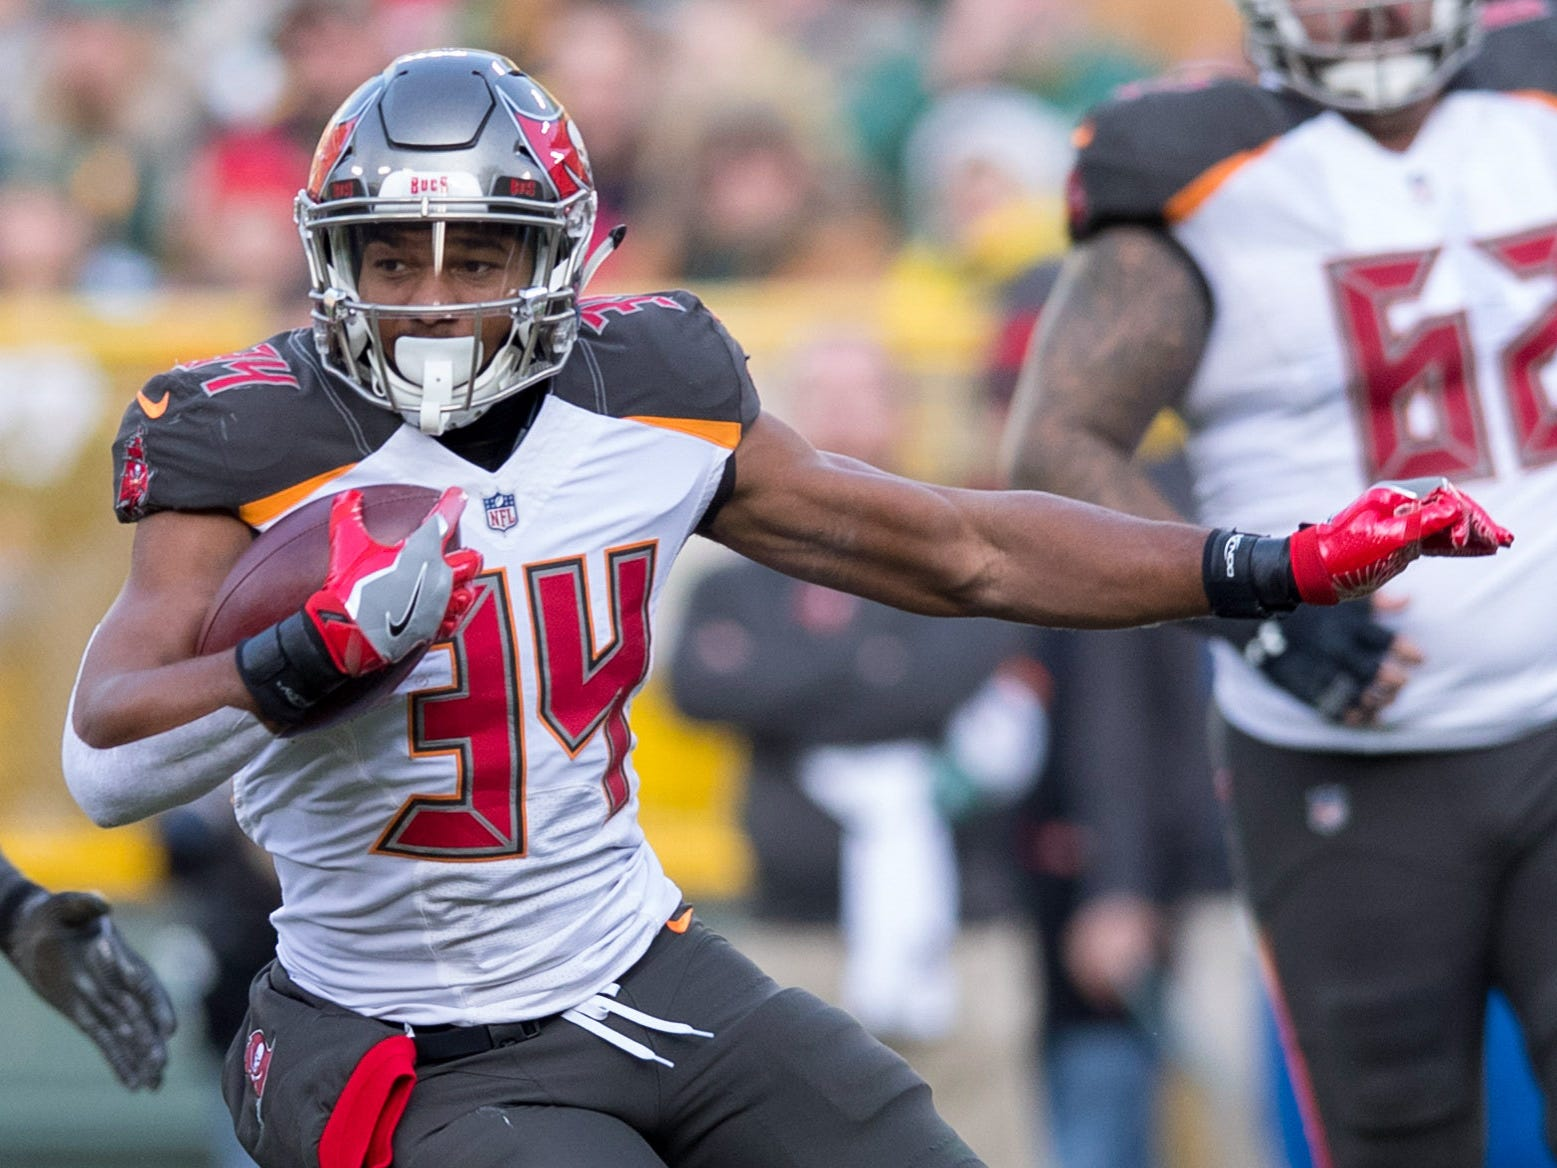 Charles Sims, RB, Tampa Bay Buccaneers (left knee injury, out for season)